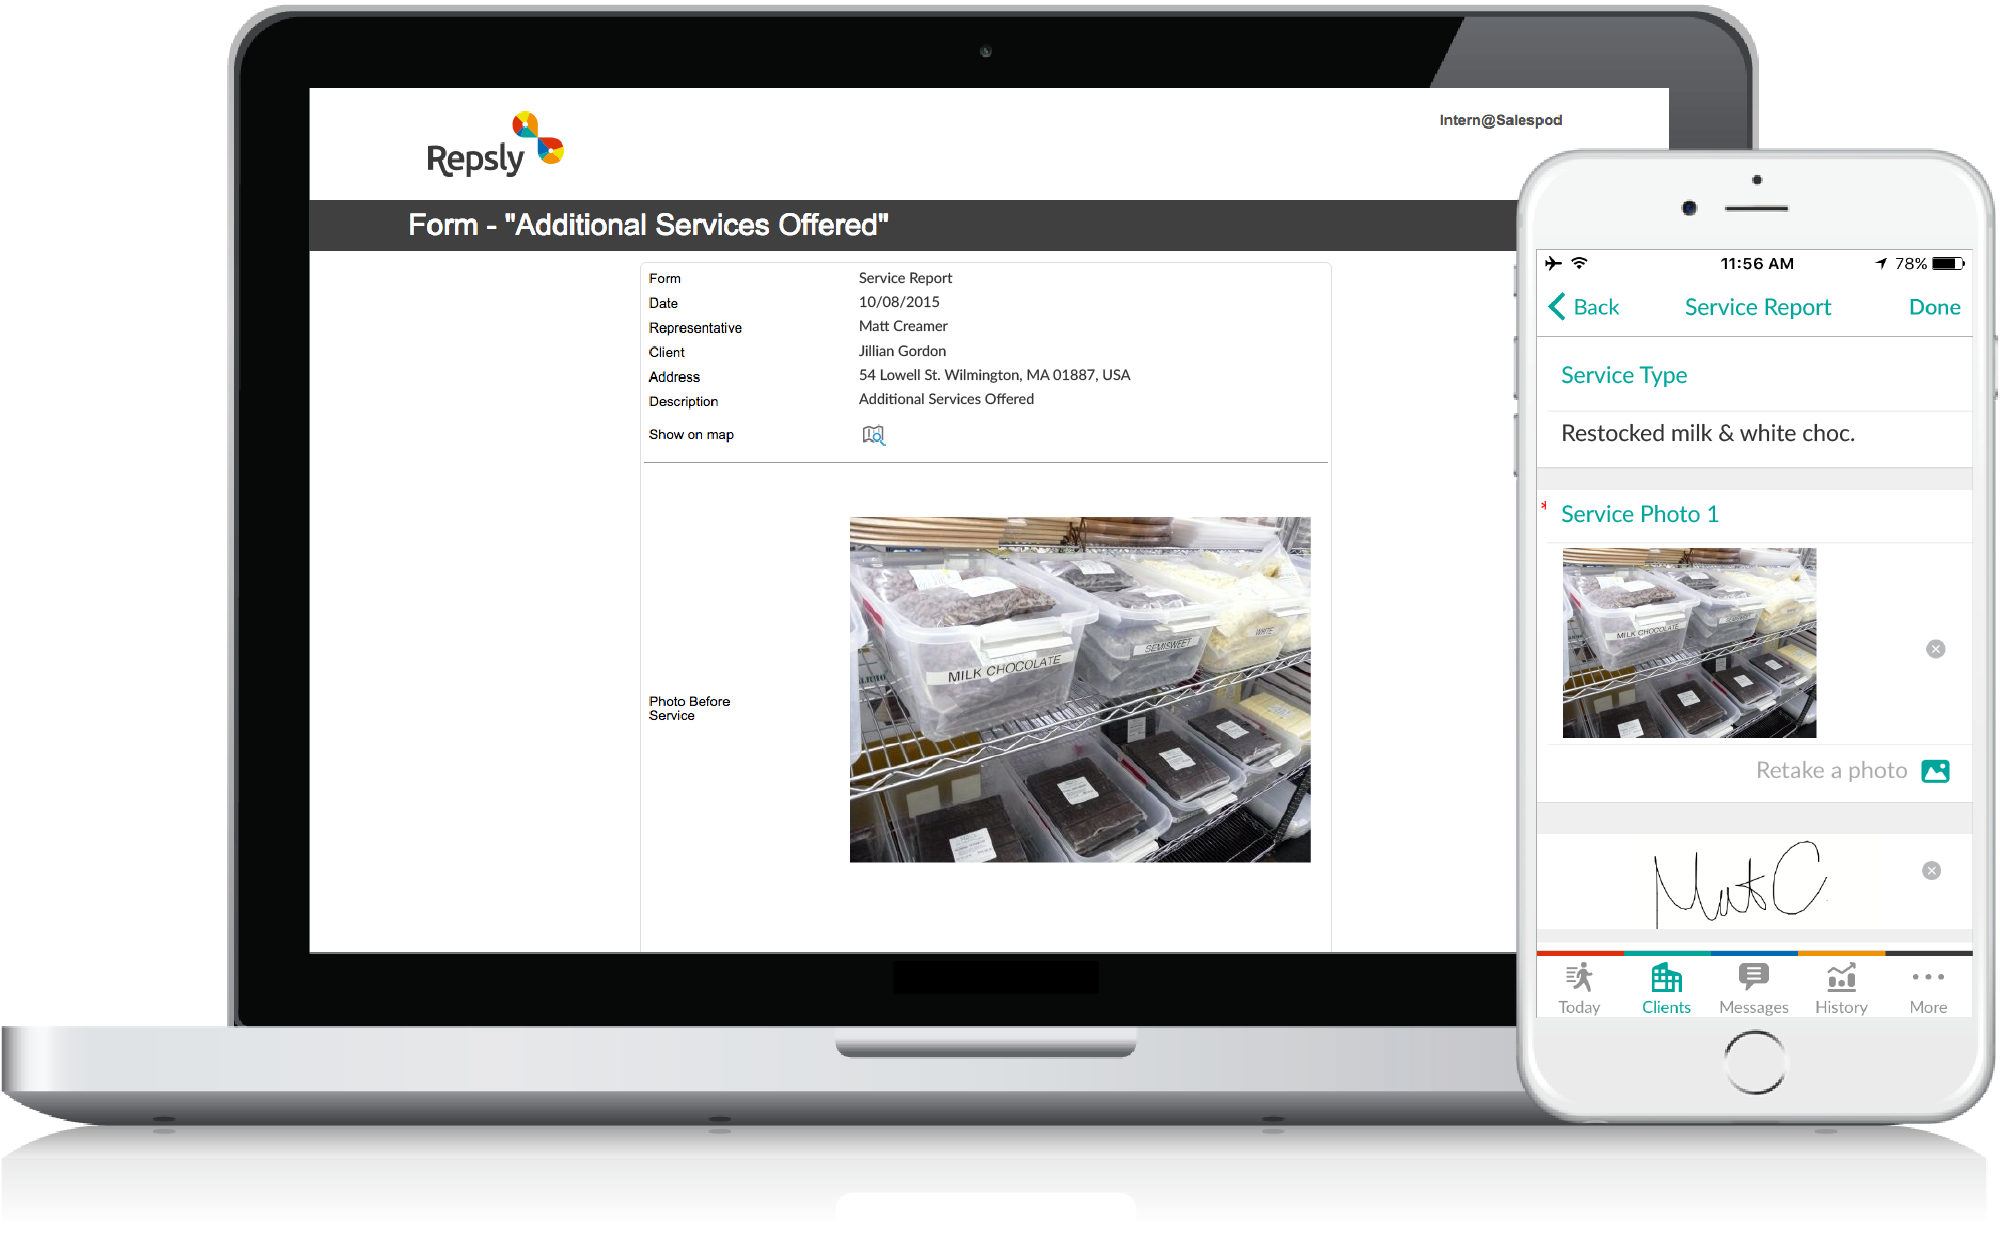 Bakery Management Software Mobile forms